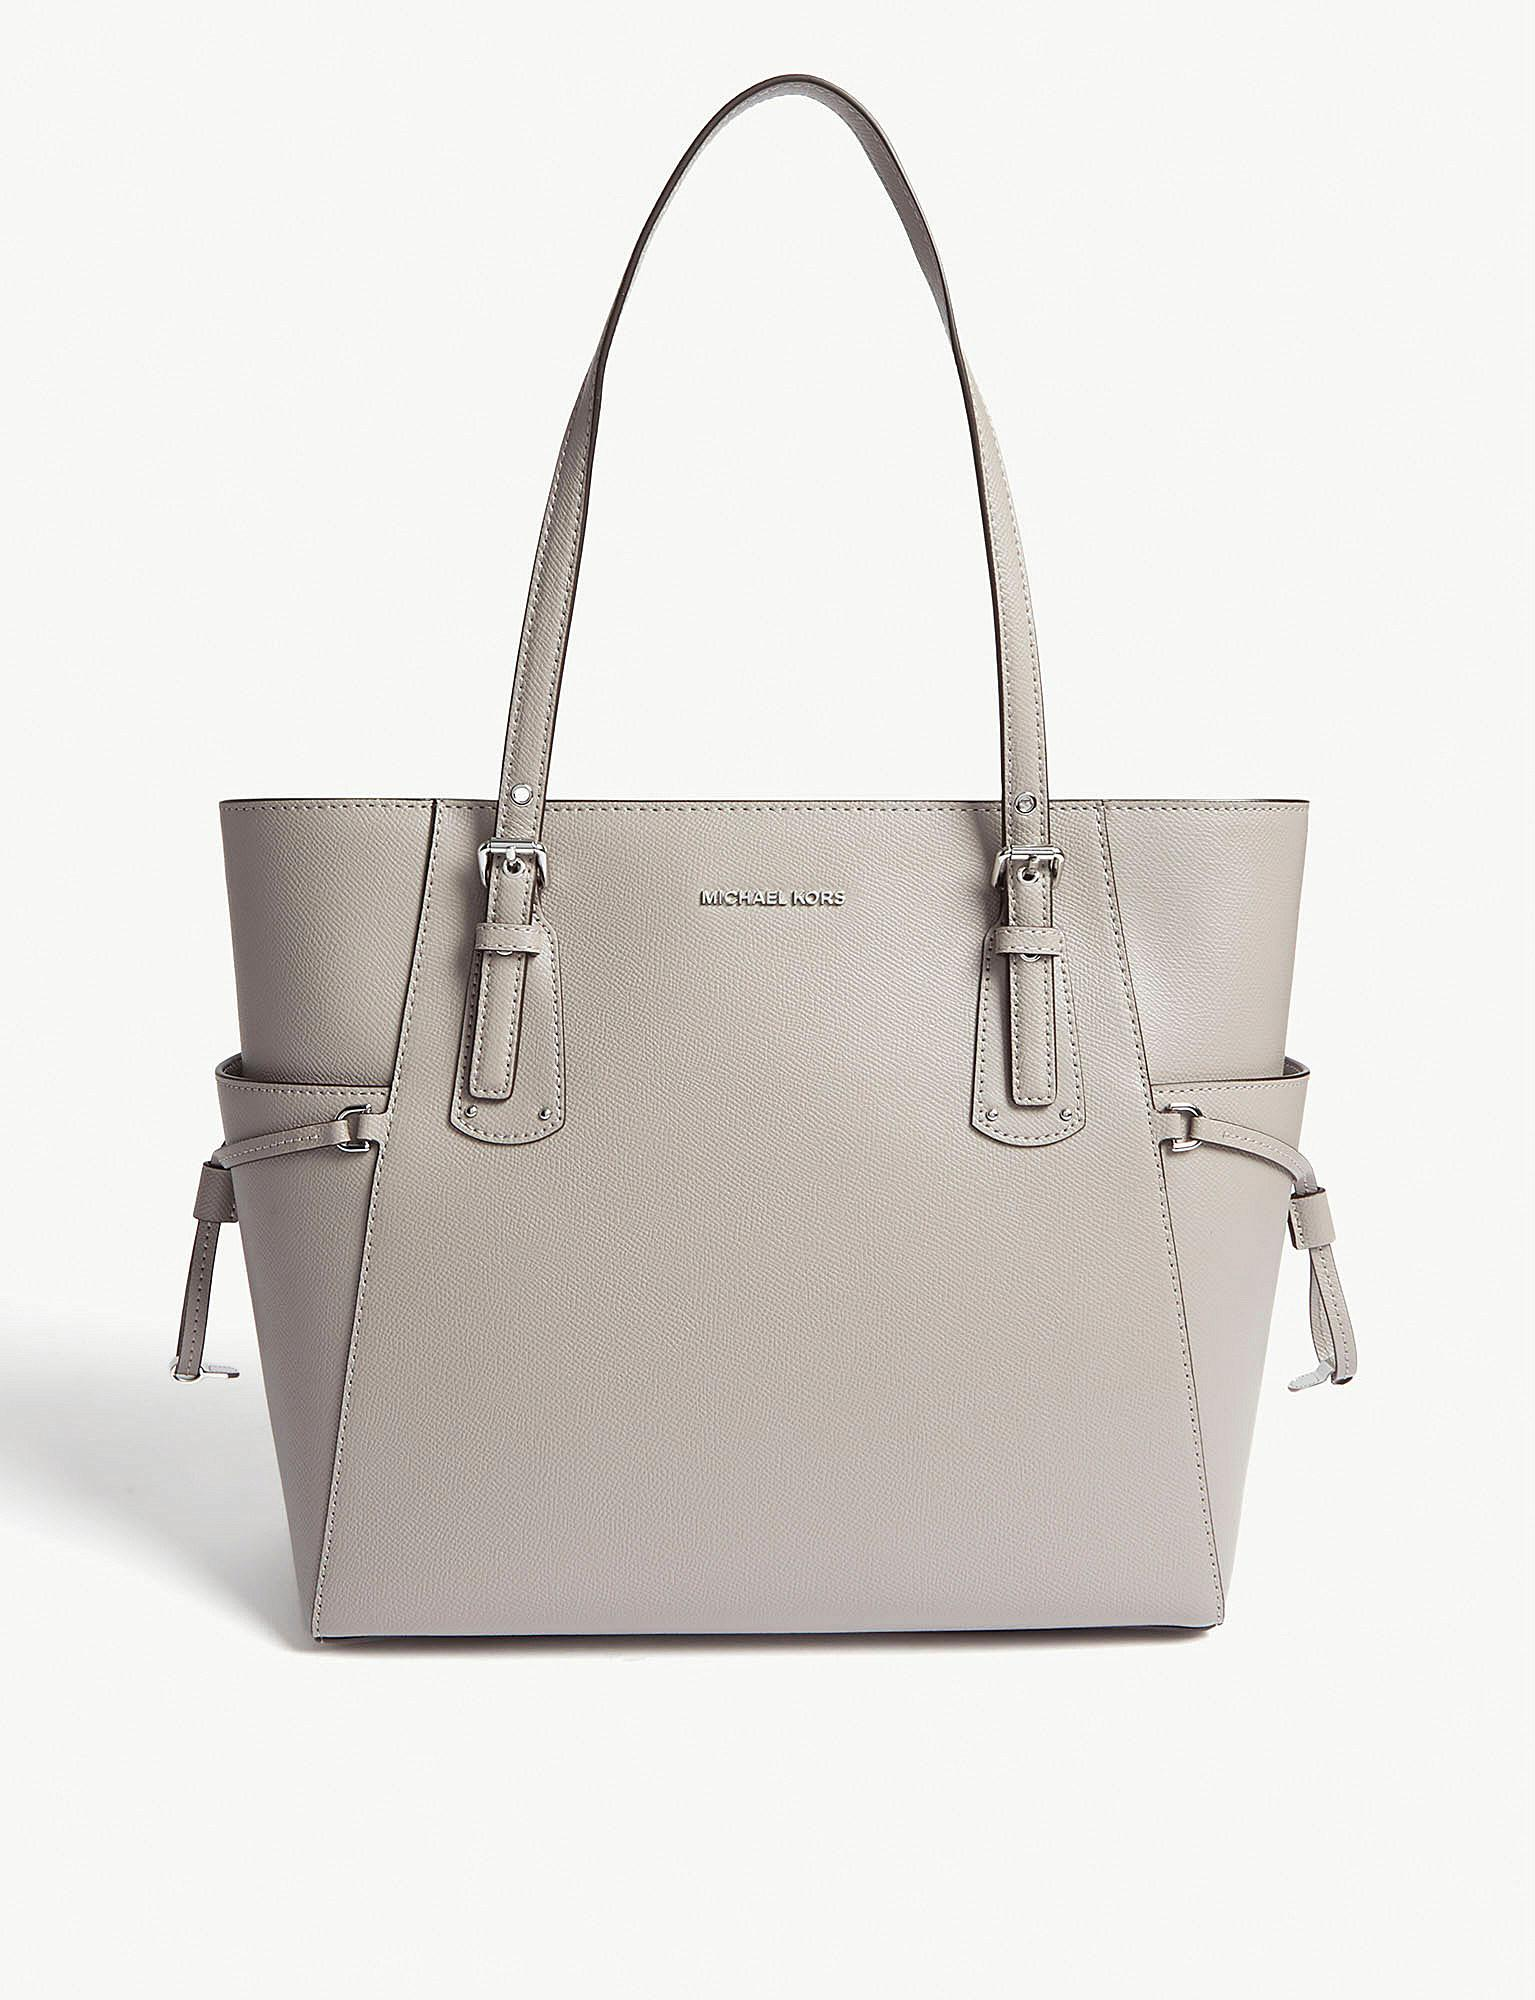 362a53d954 Michael Michael Kors Leather Tote Bag in Gray - Lyst